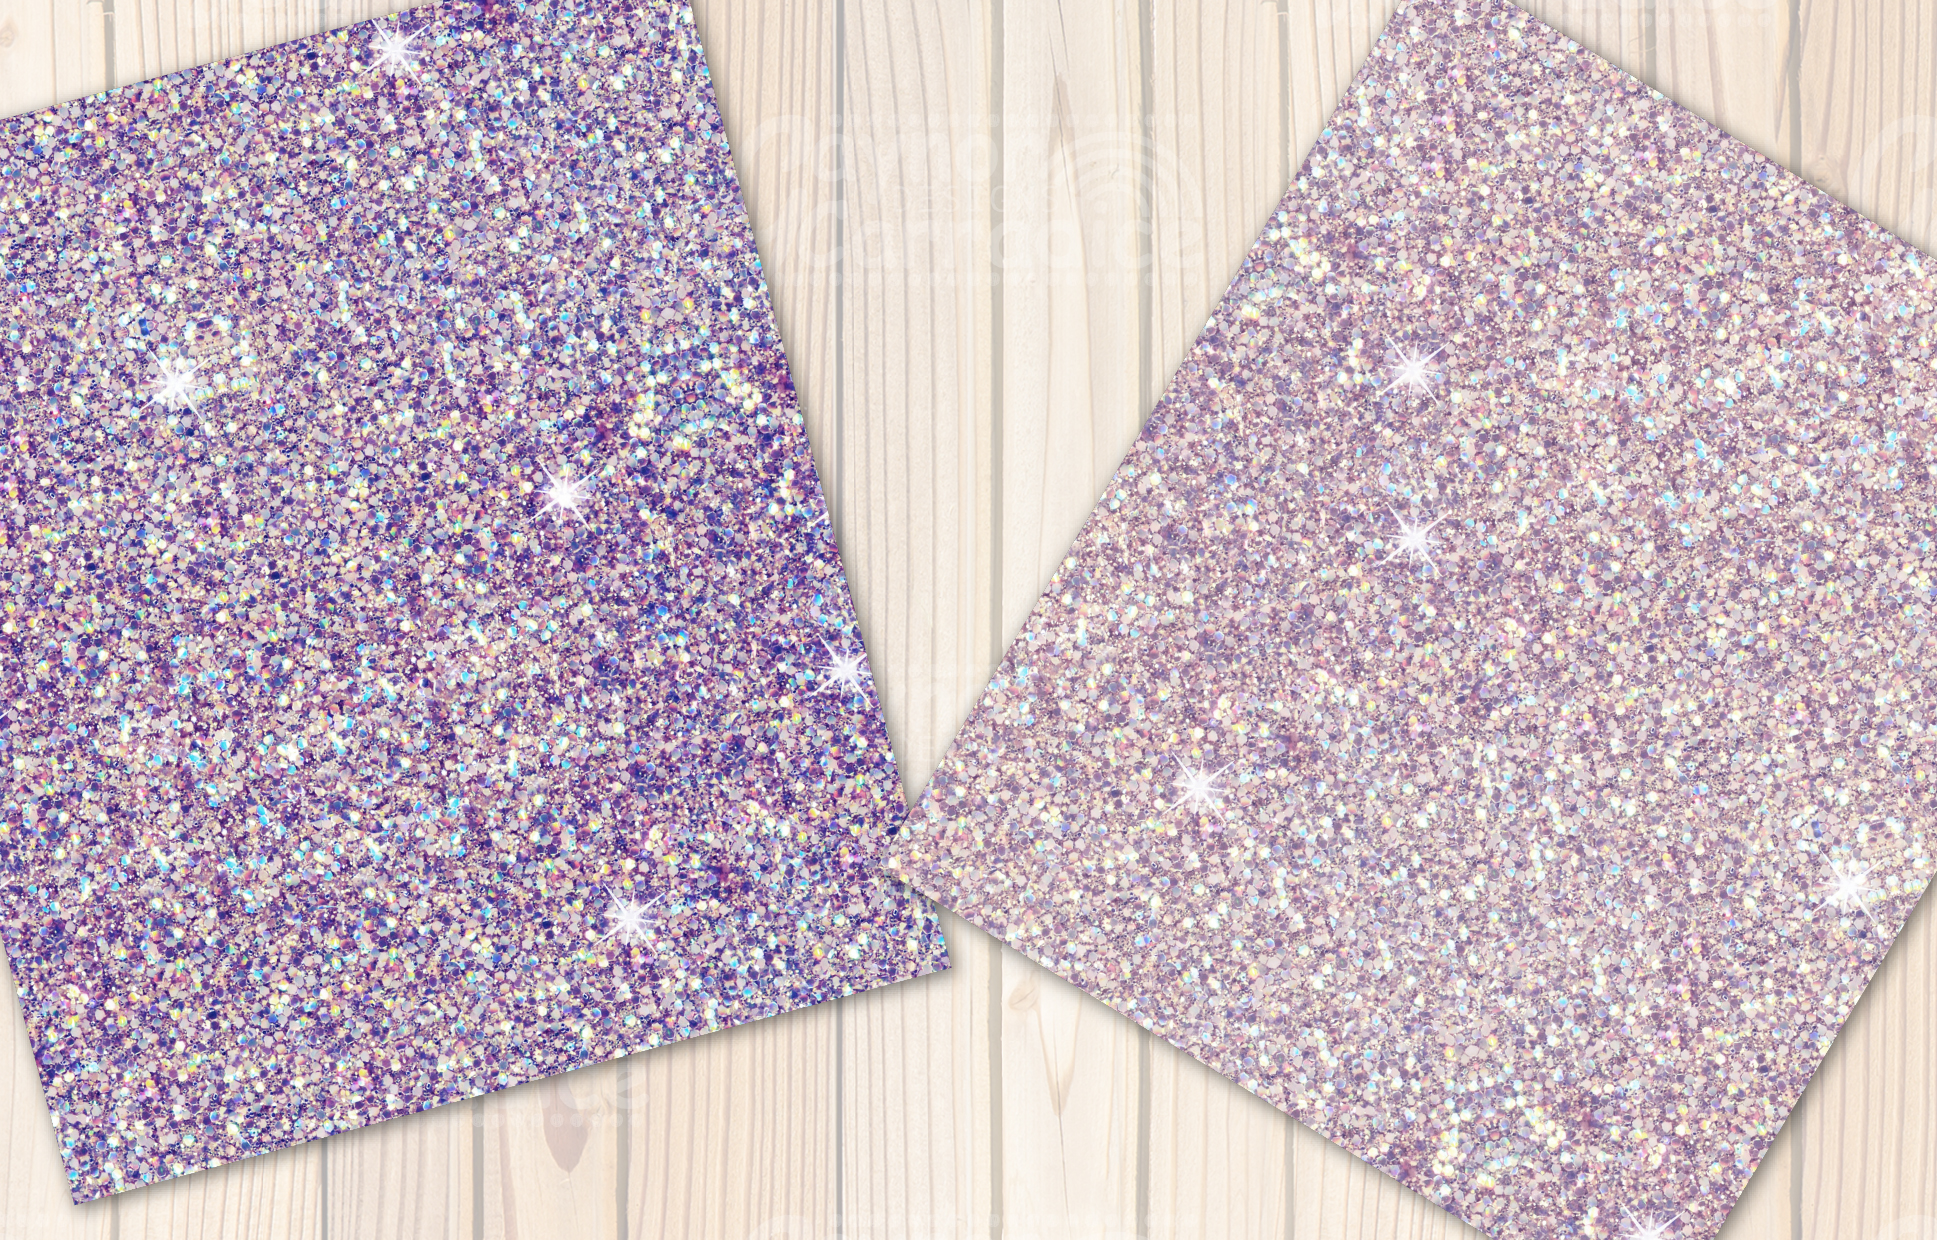 Moonlight glitter collection example image 3